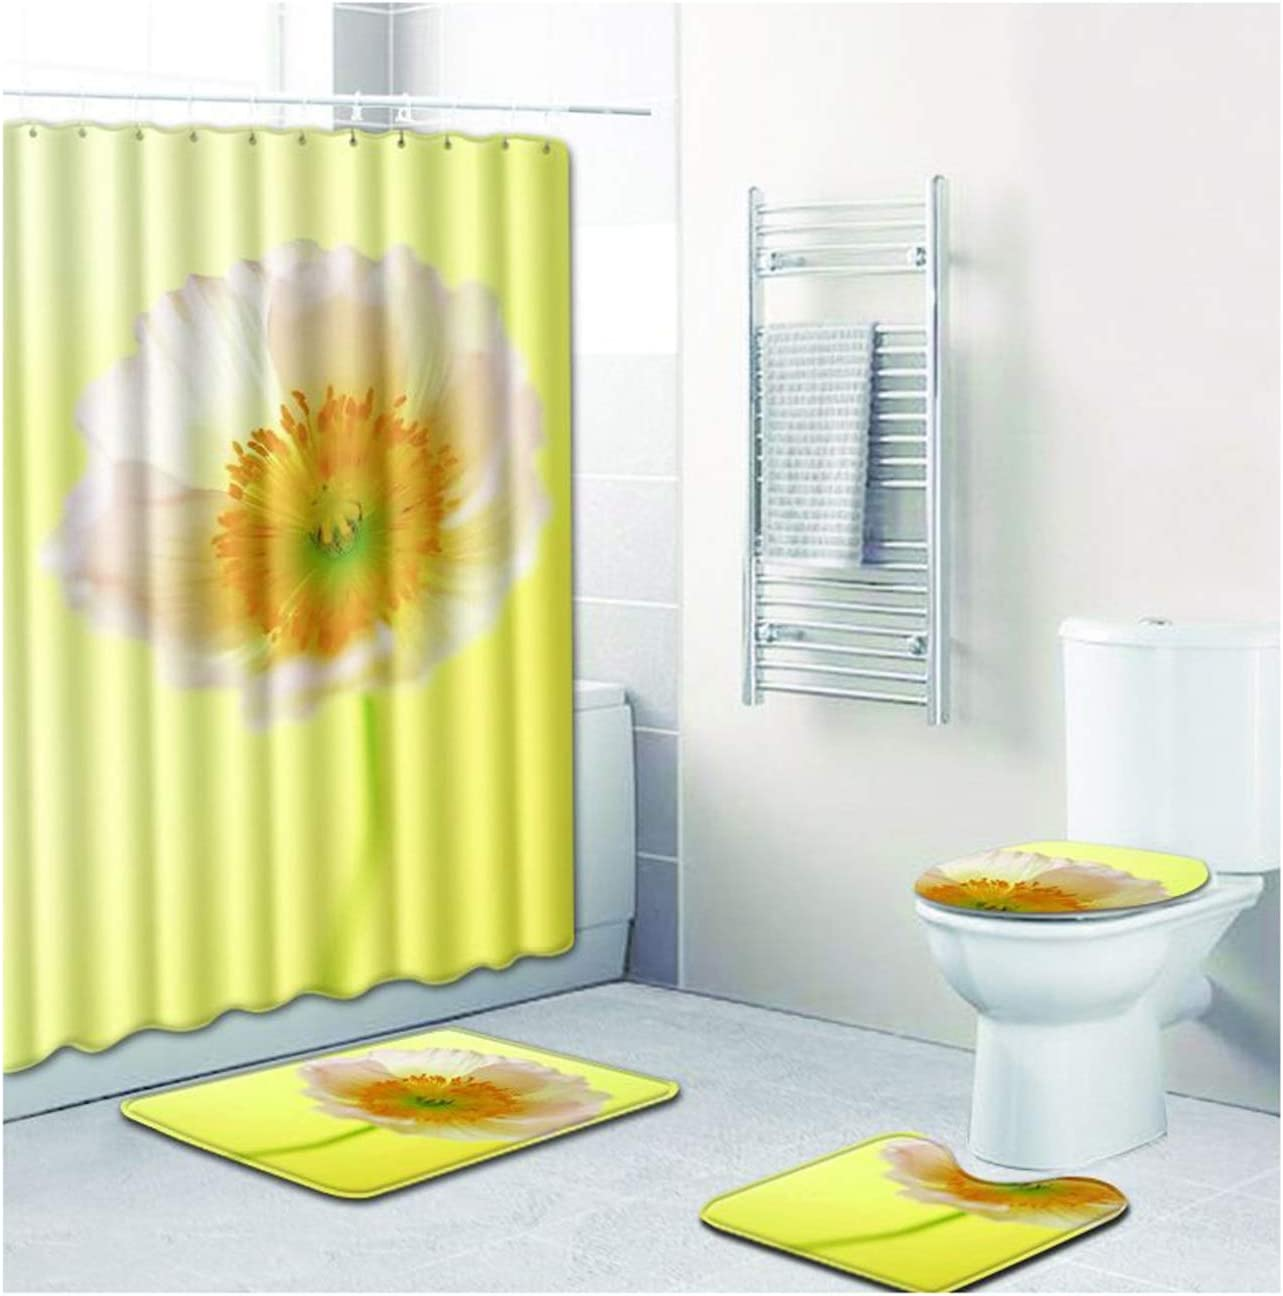 Gnzoe 4 PCS Bathroom Rare Shower Curtain with Print Flower Rugs Spasm price Sets